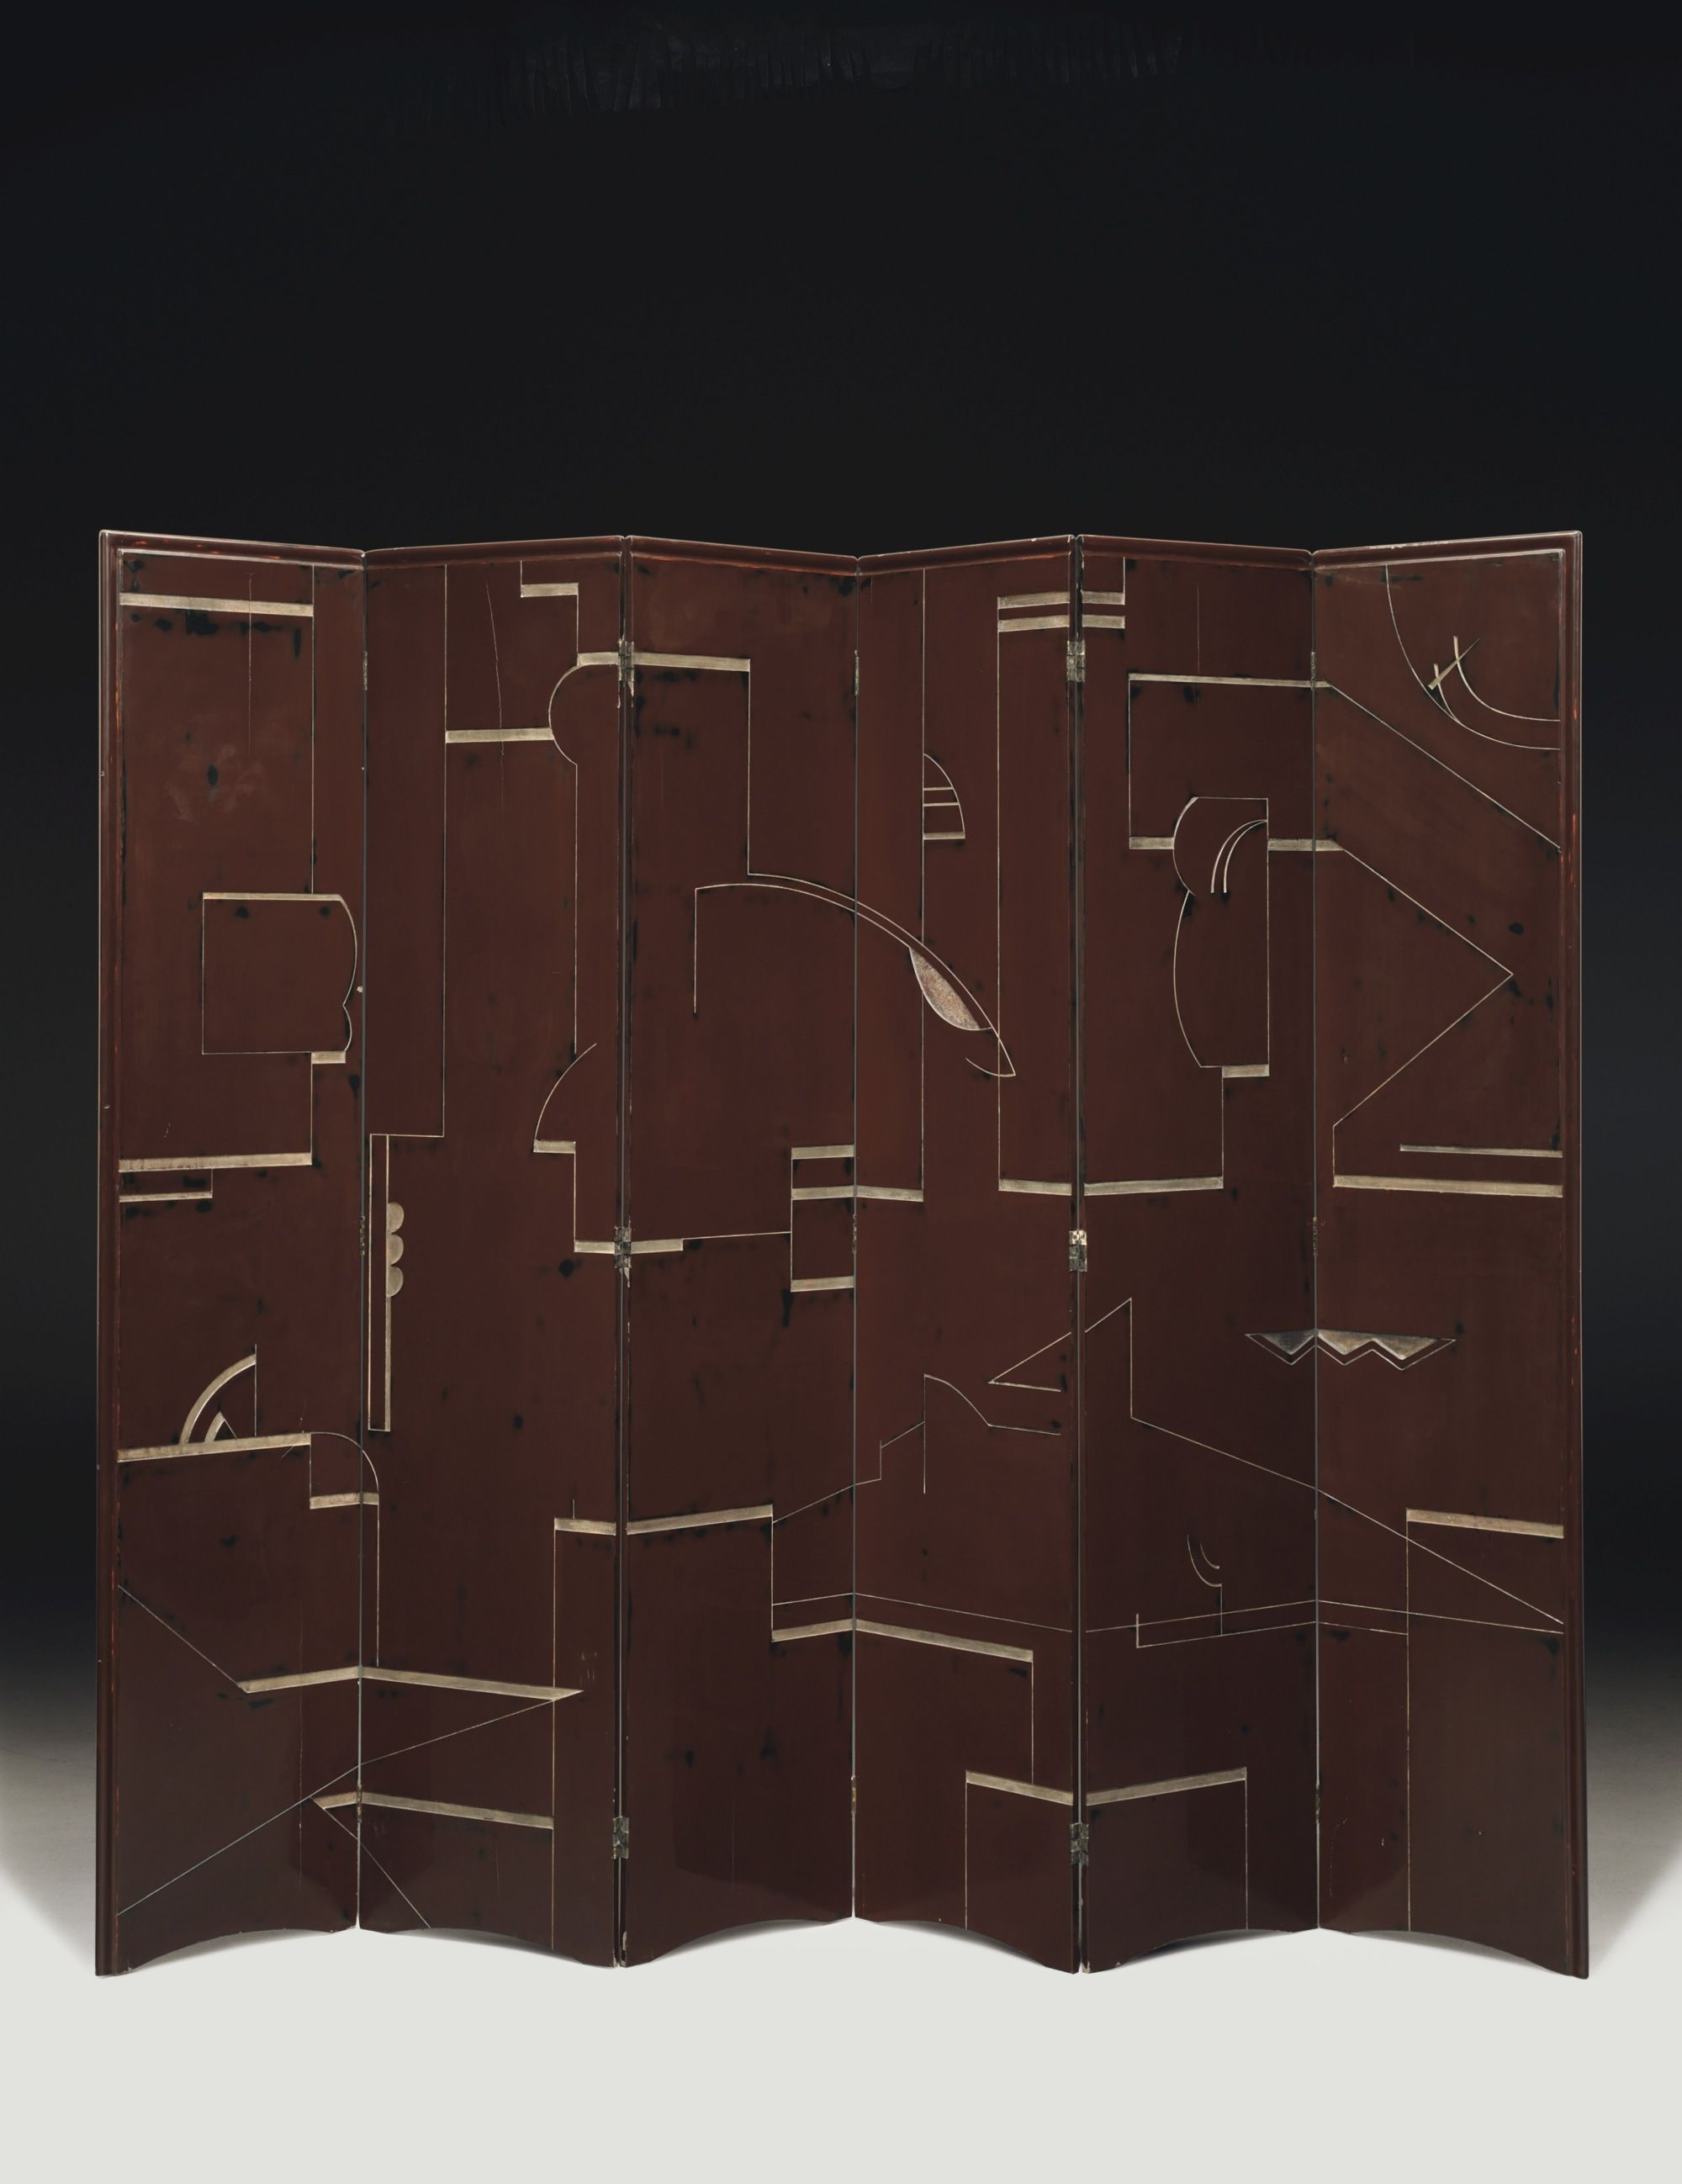 Bauhaus Paravent Lacquer Screen By Eileen Gray At The Kelly Gallery Furniture